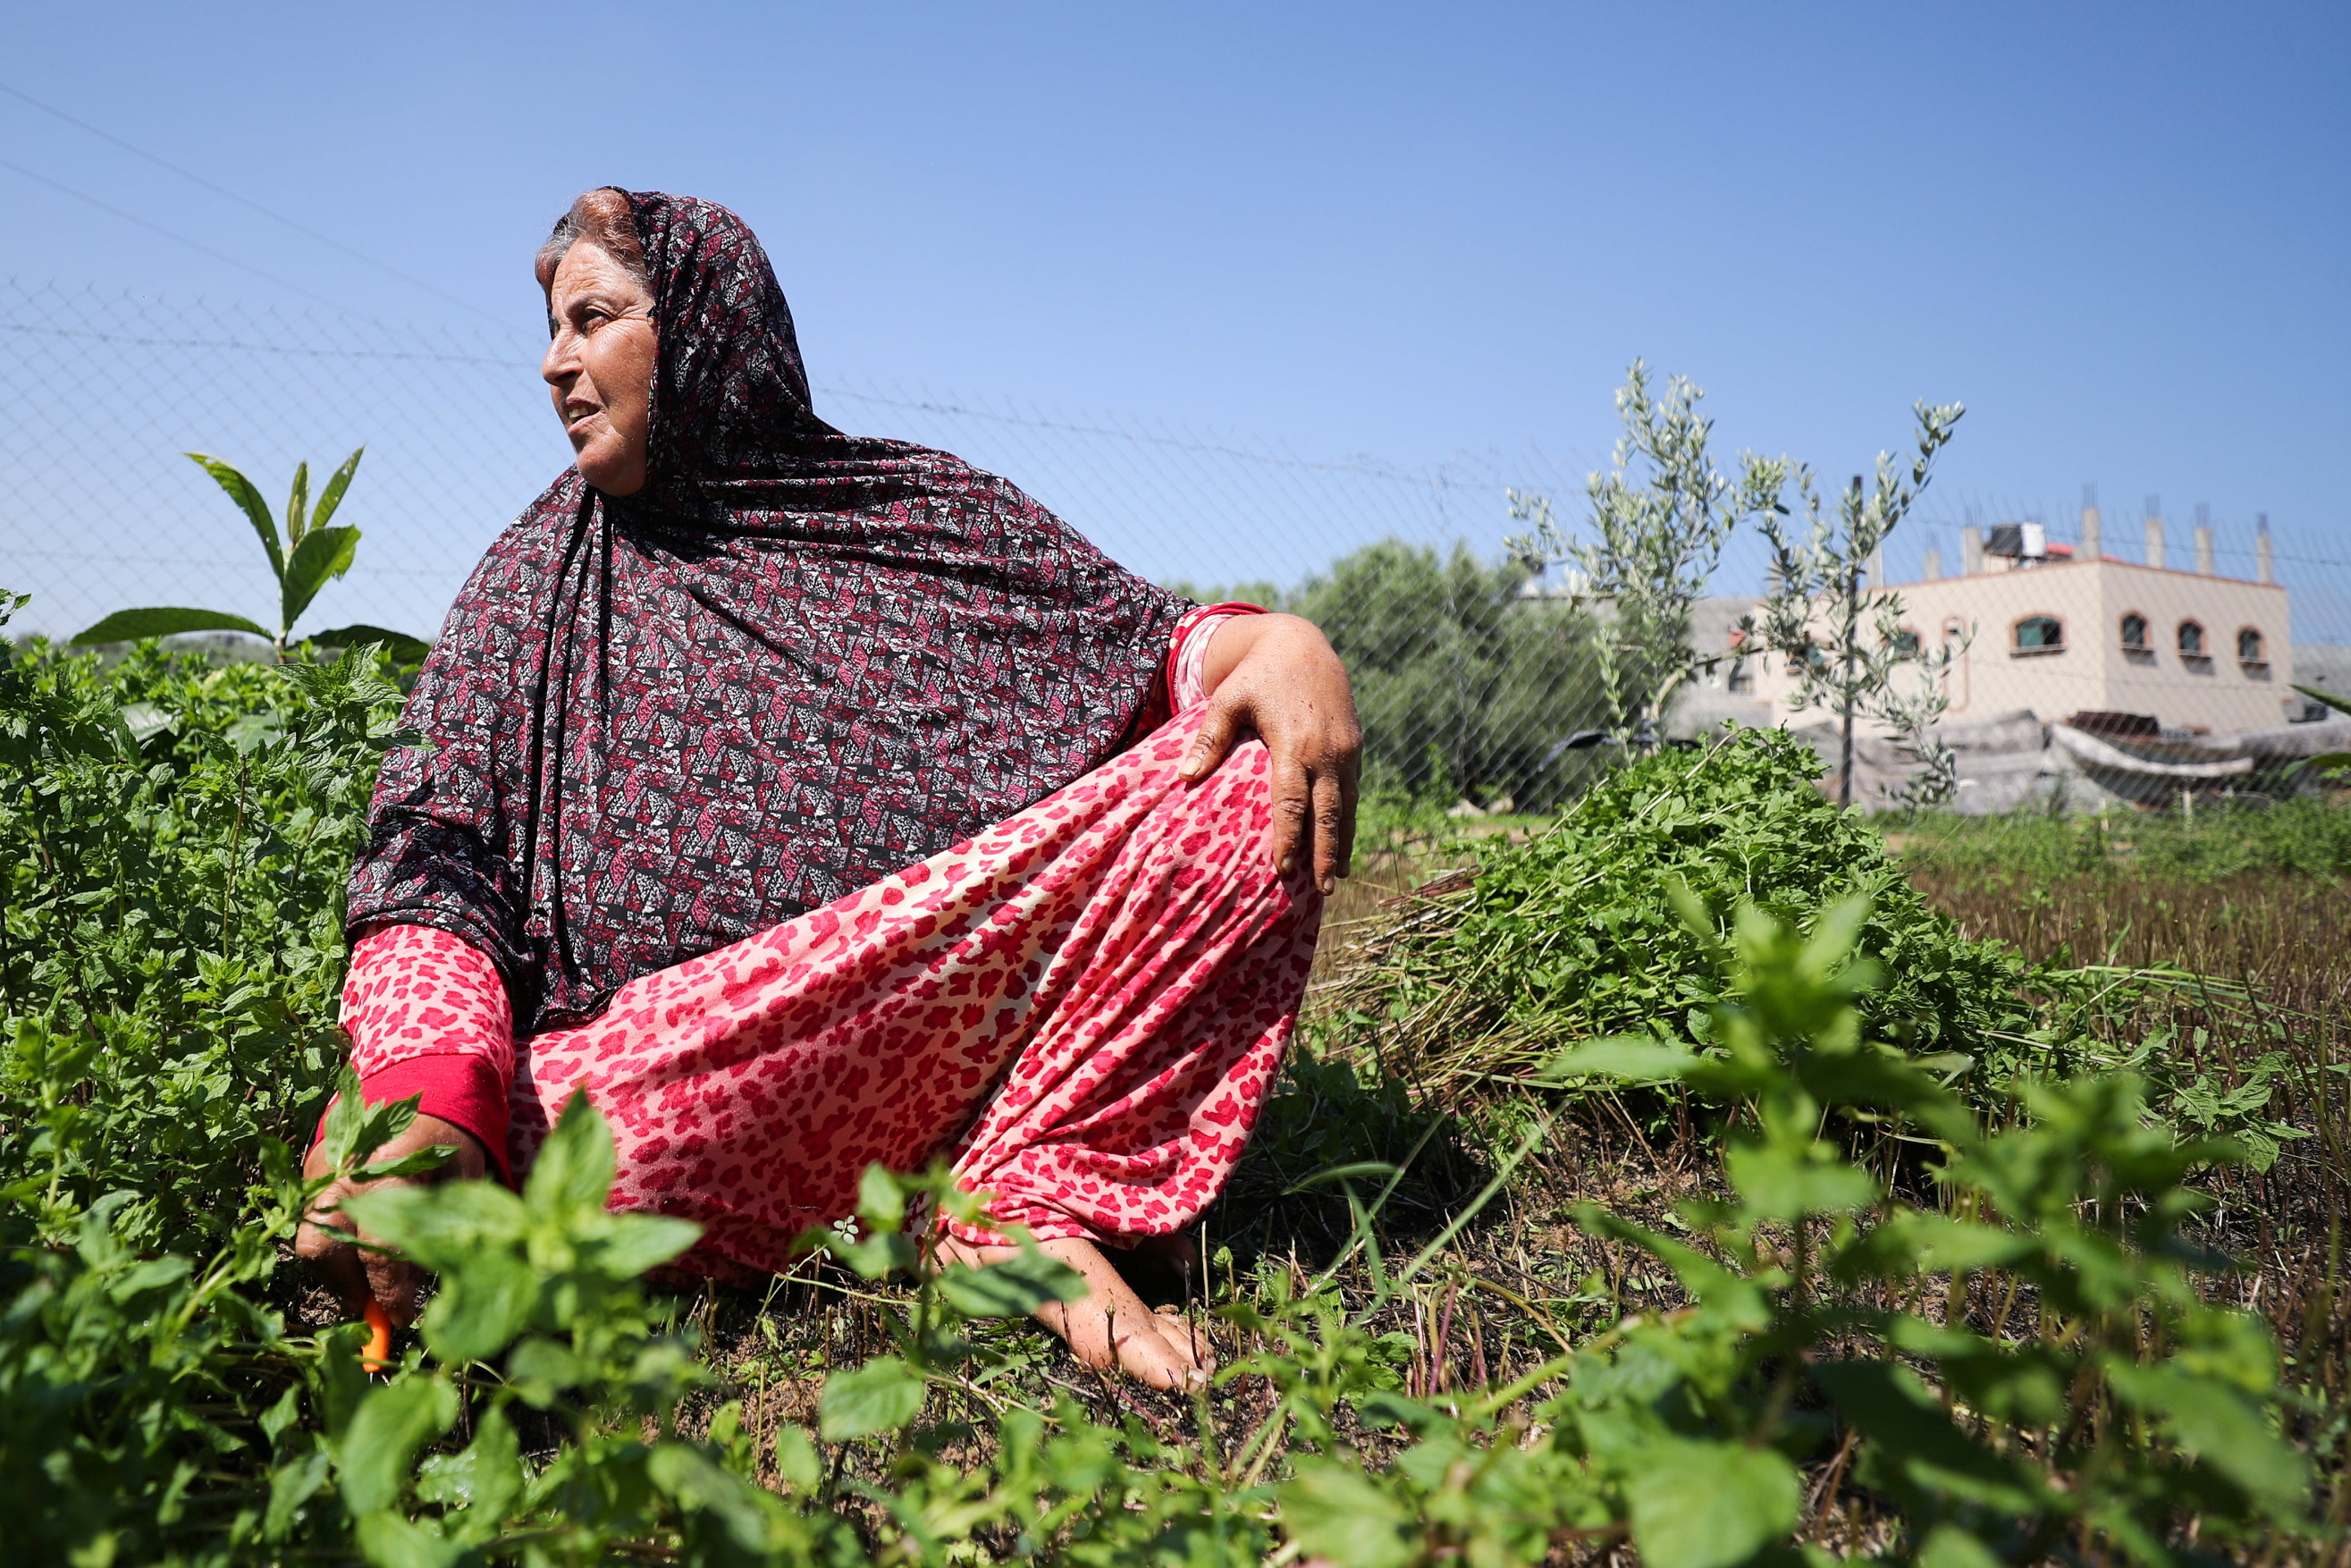 A Palestinian woman cuts mint in her family land, in Beit Lahiya town in the northern Gaza Strip July 28, 2021. REUTERS/Mohammed Salem